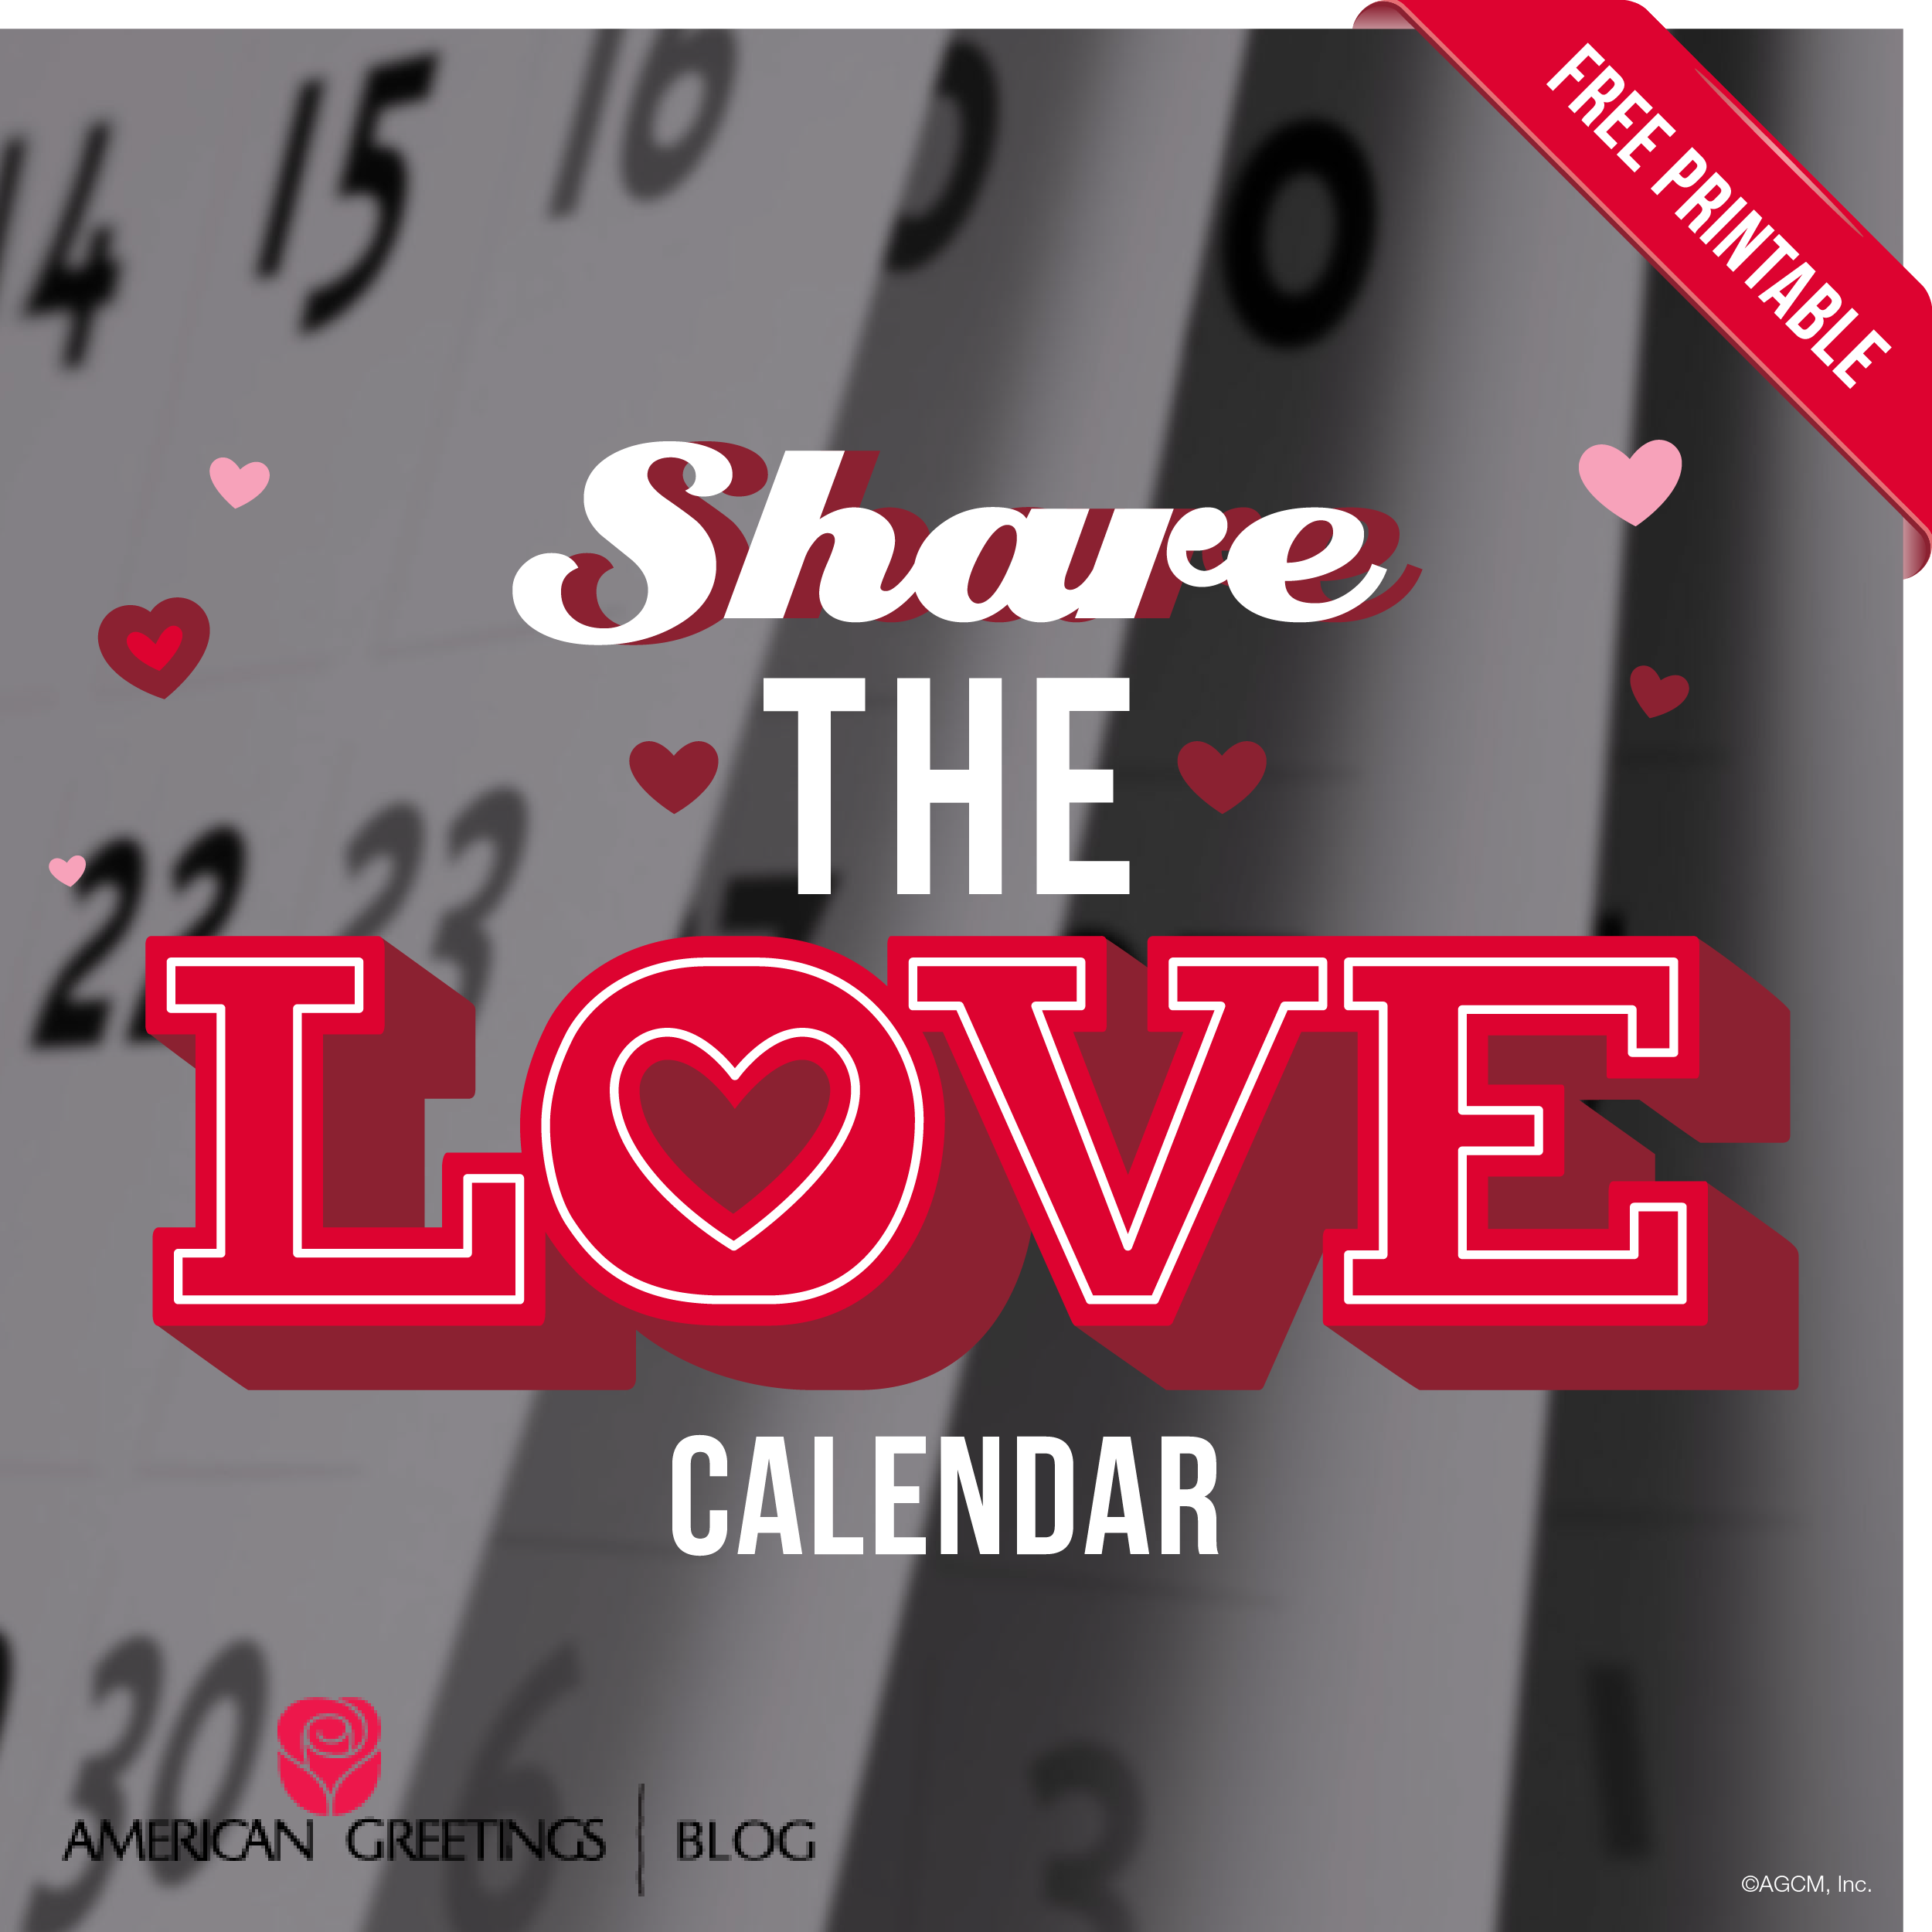 Printable Valentines Day Calendar American Greetings